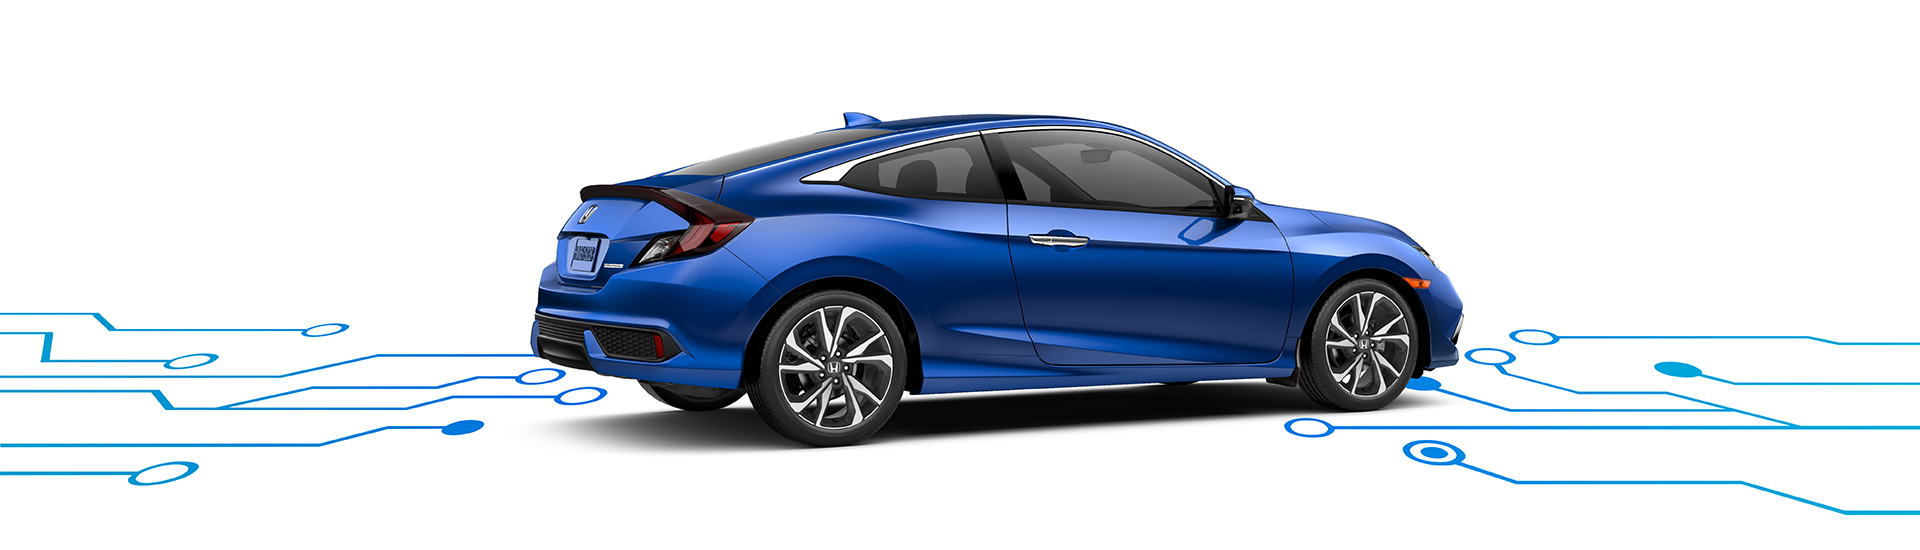 Explore The Honda Civic Coupe